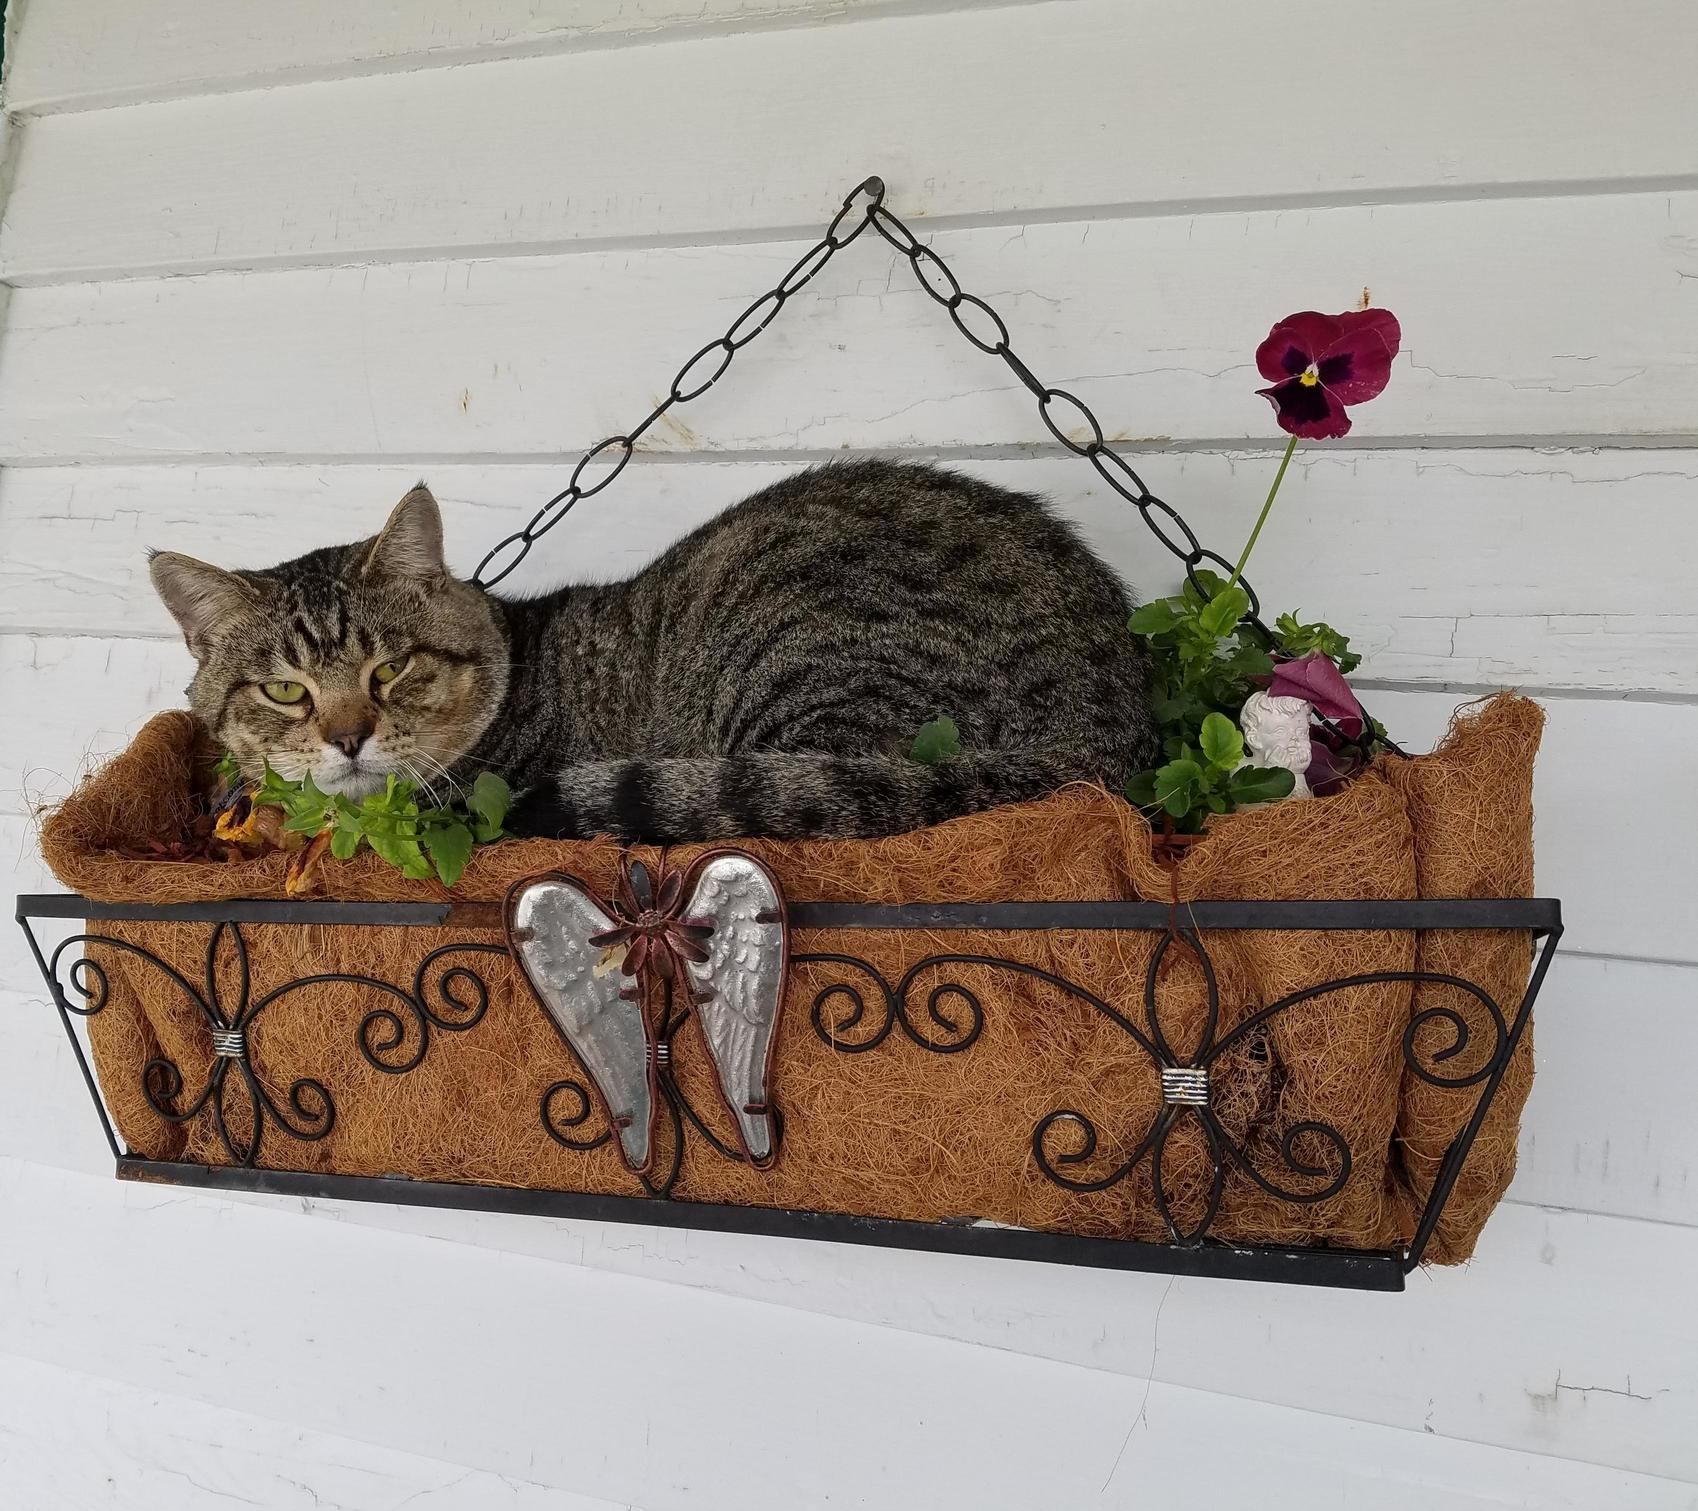 My cat squeakys favorite spot (so much for having flowers)